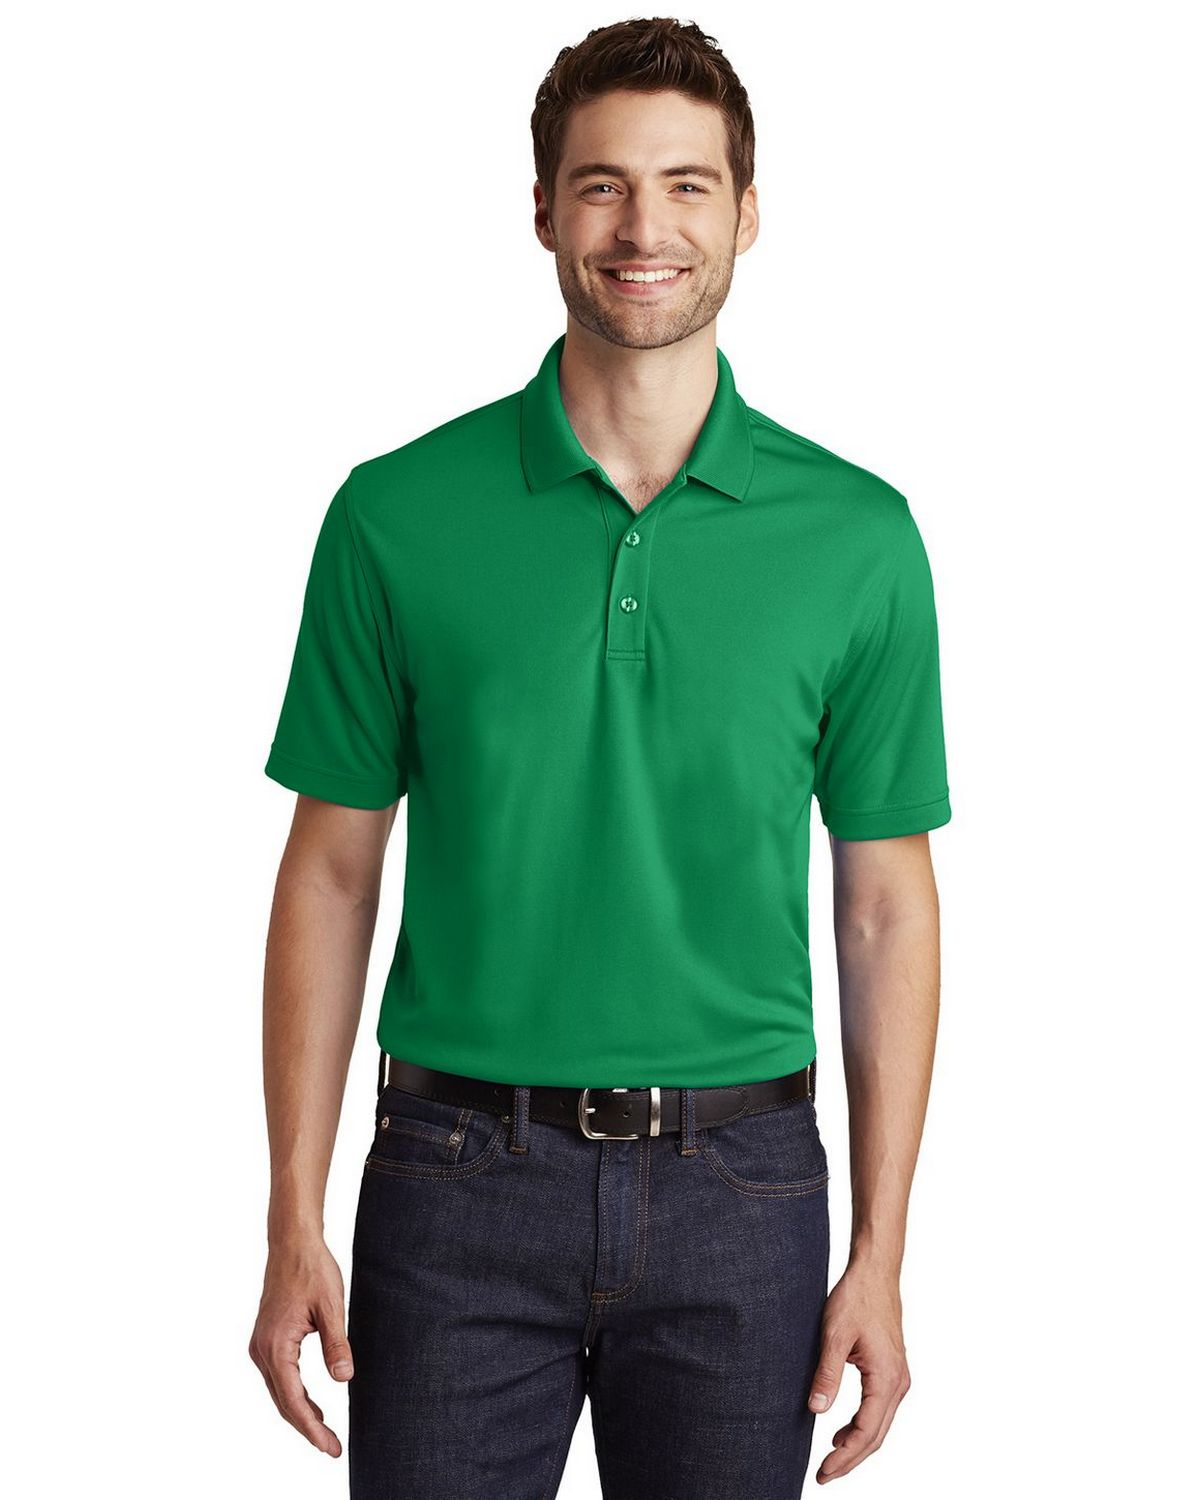 Port Authority K110 Mens Dry Zone UV Micro Mesh Polo Shirt